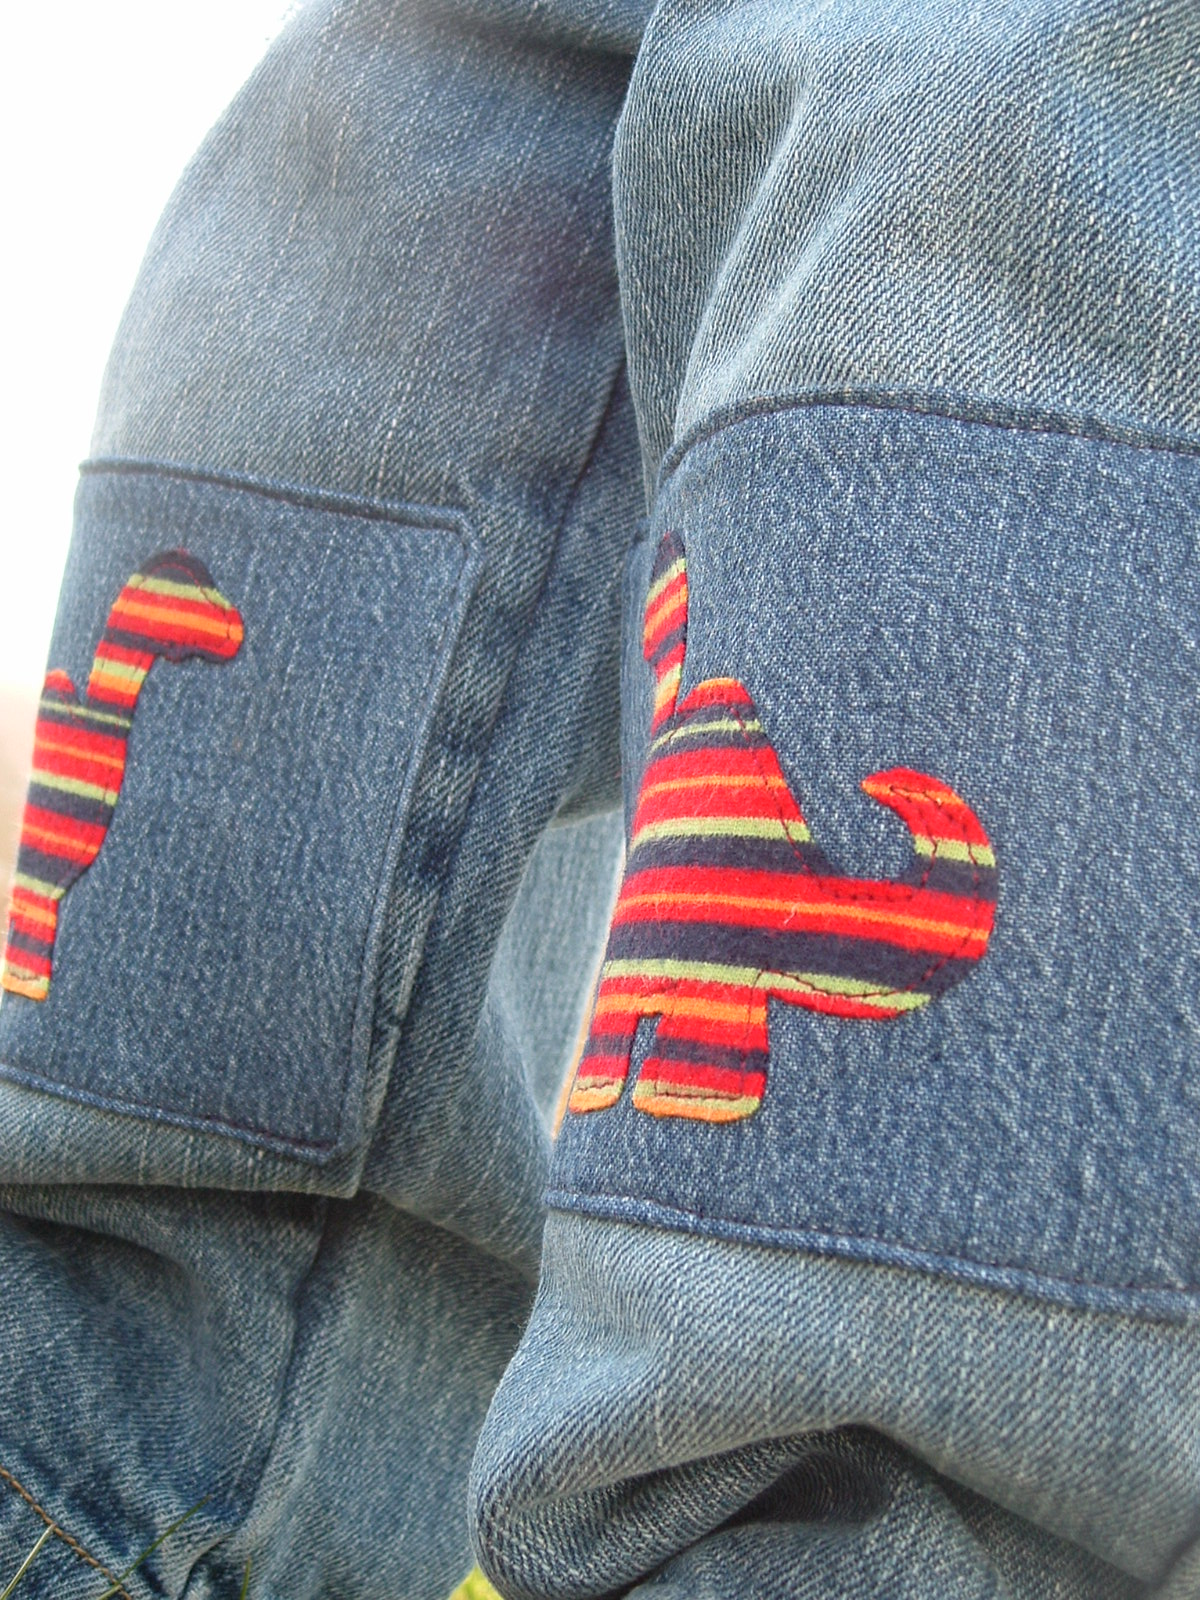 Get a little more wear out of those jeans and make a fun fashion statement with sturdy denim patches. Find this Pin and more on Knee patches for kids by sandra G. See more.